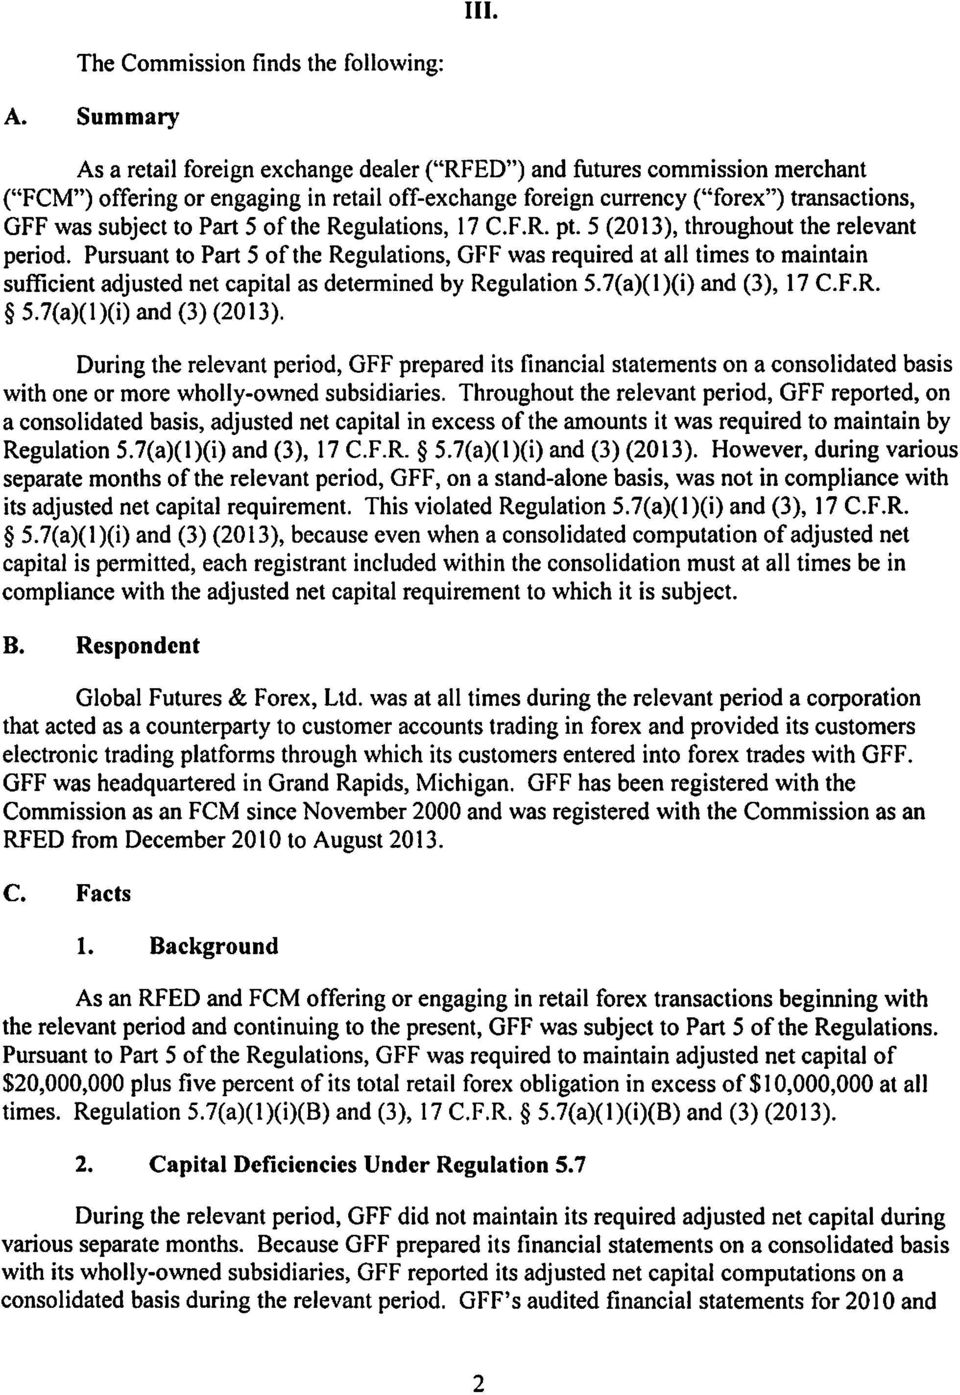 5 of the Regulations, 17 C.F.R. pt. 5 (20 13, throughout the relevant period.